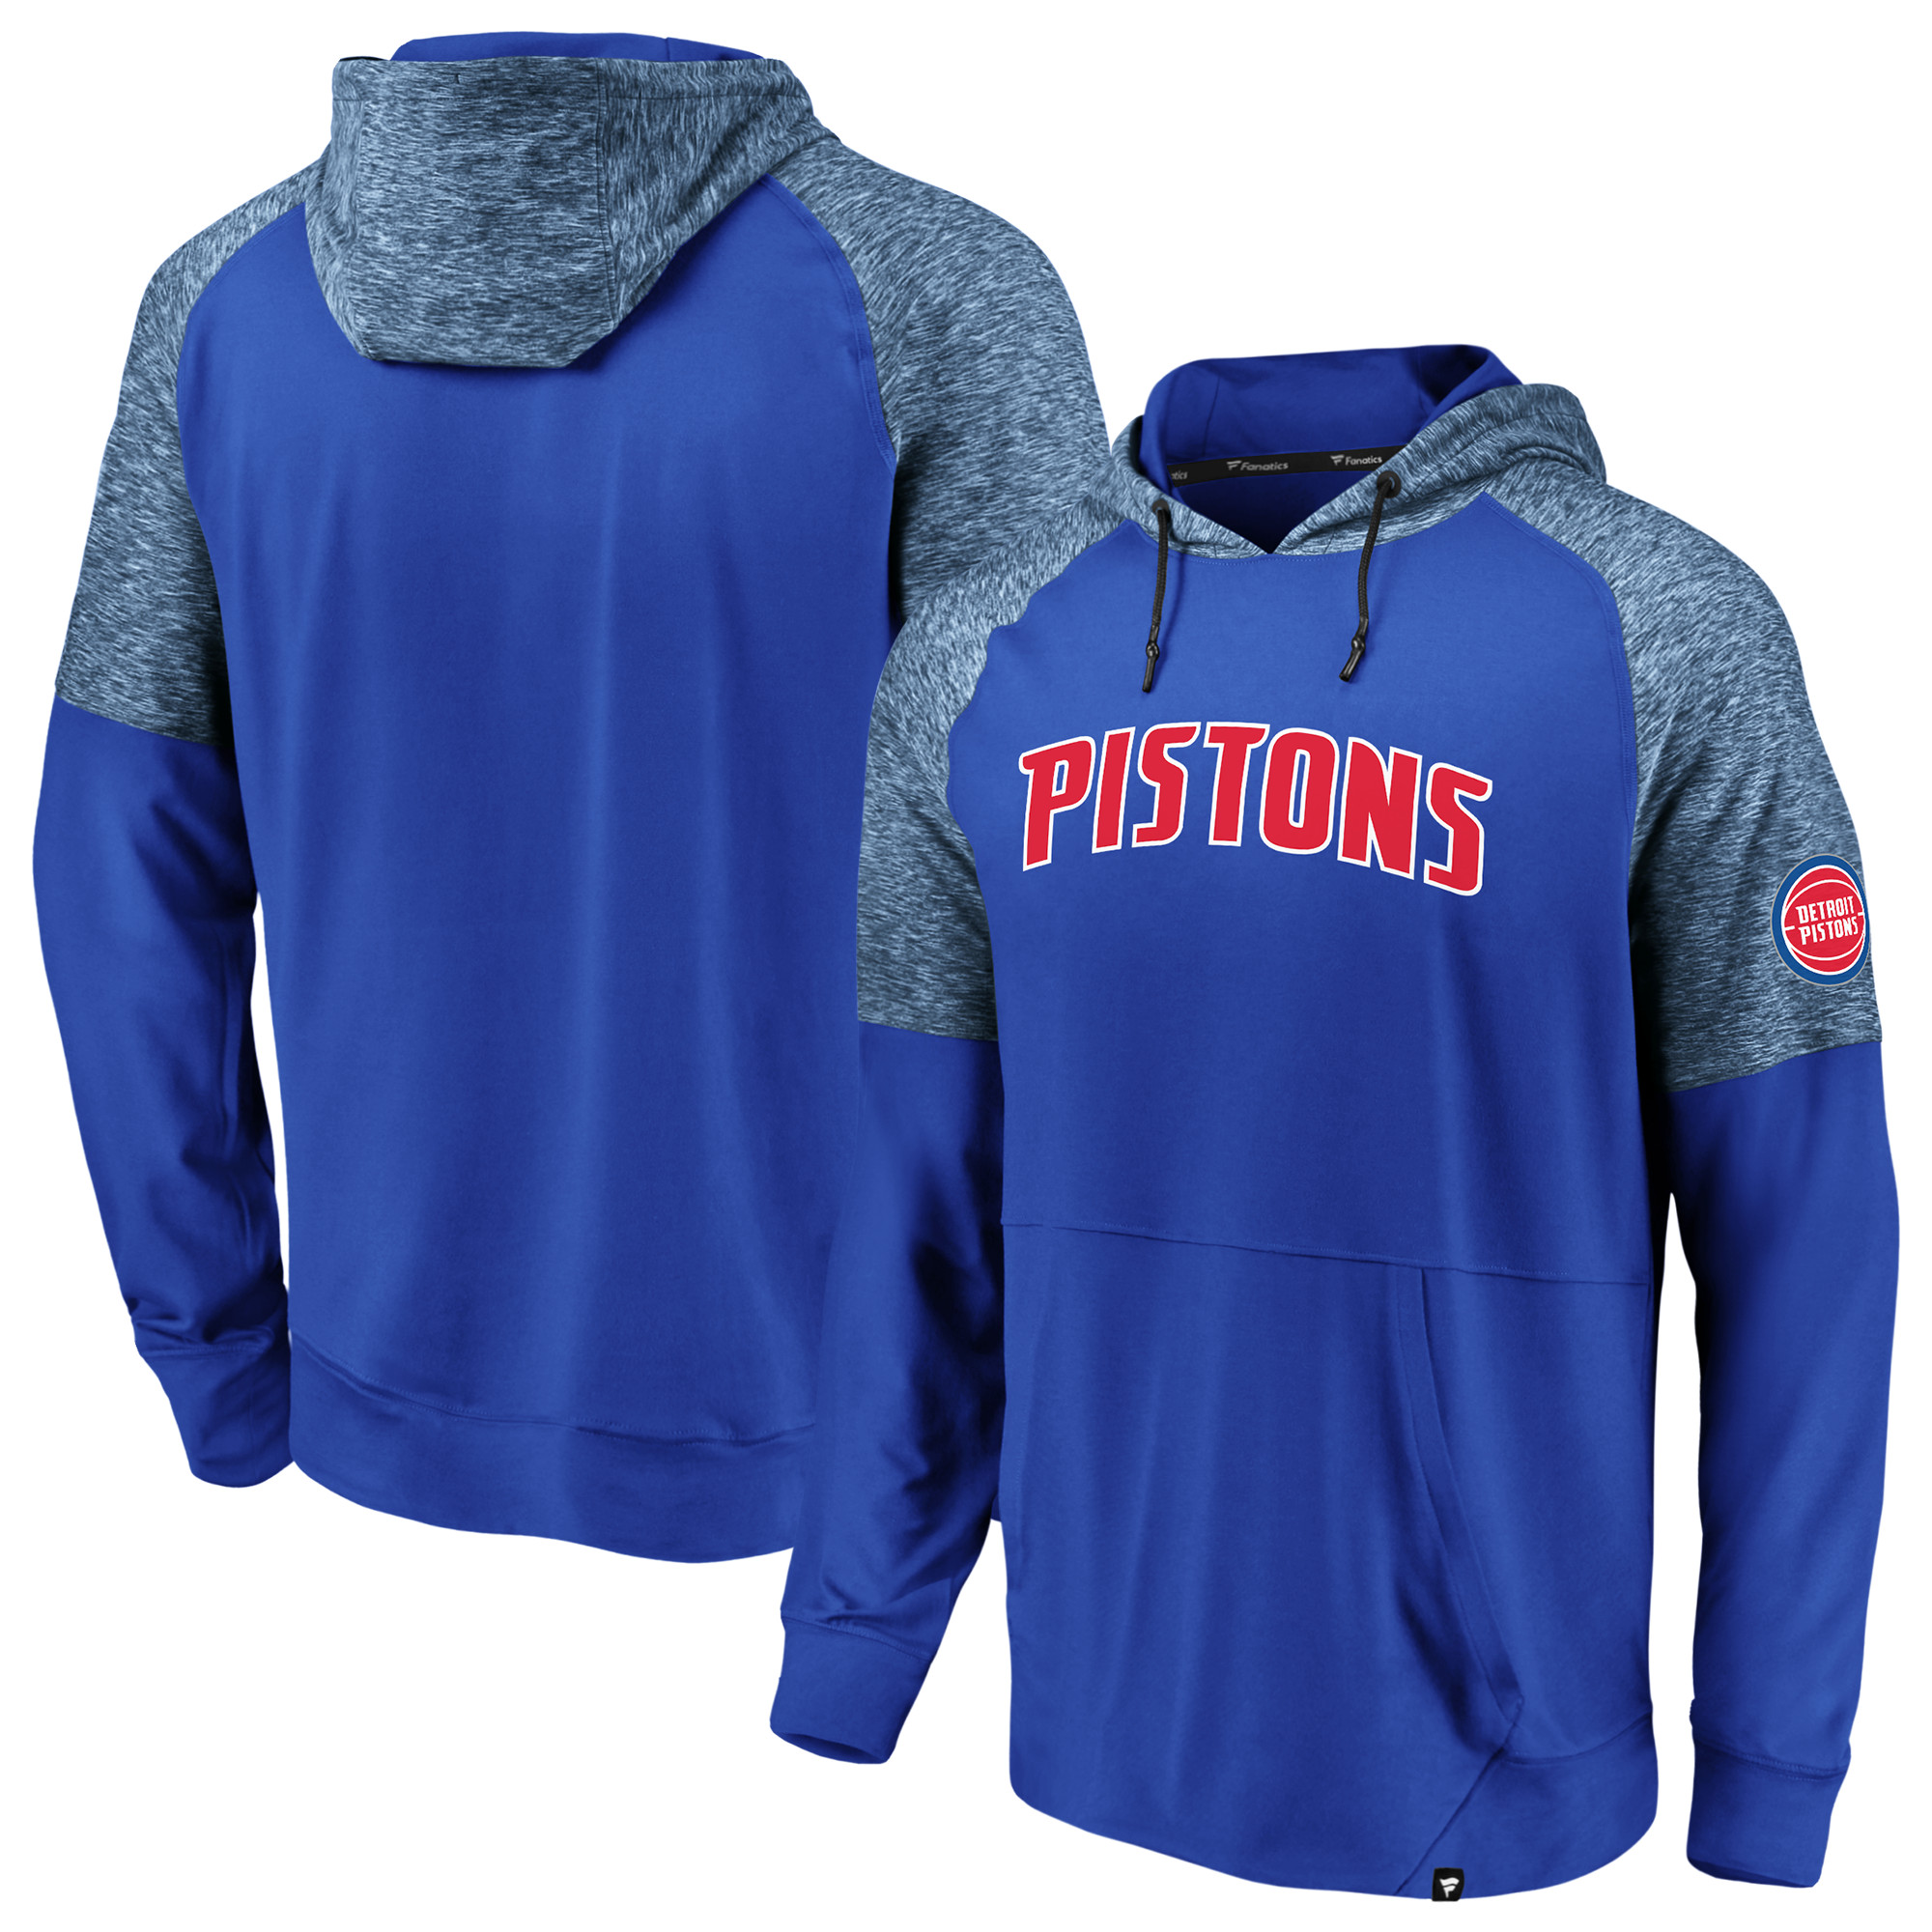 Detroit Pistons Fanatics Branded Made to Move Static Performance Raglan Pullover Hoodie - Blue/Heathered Blue